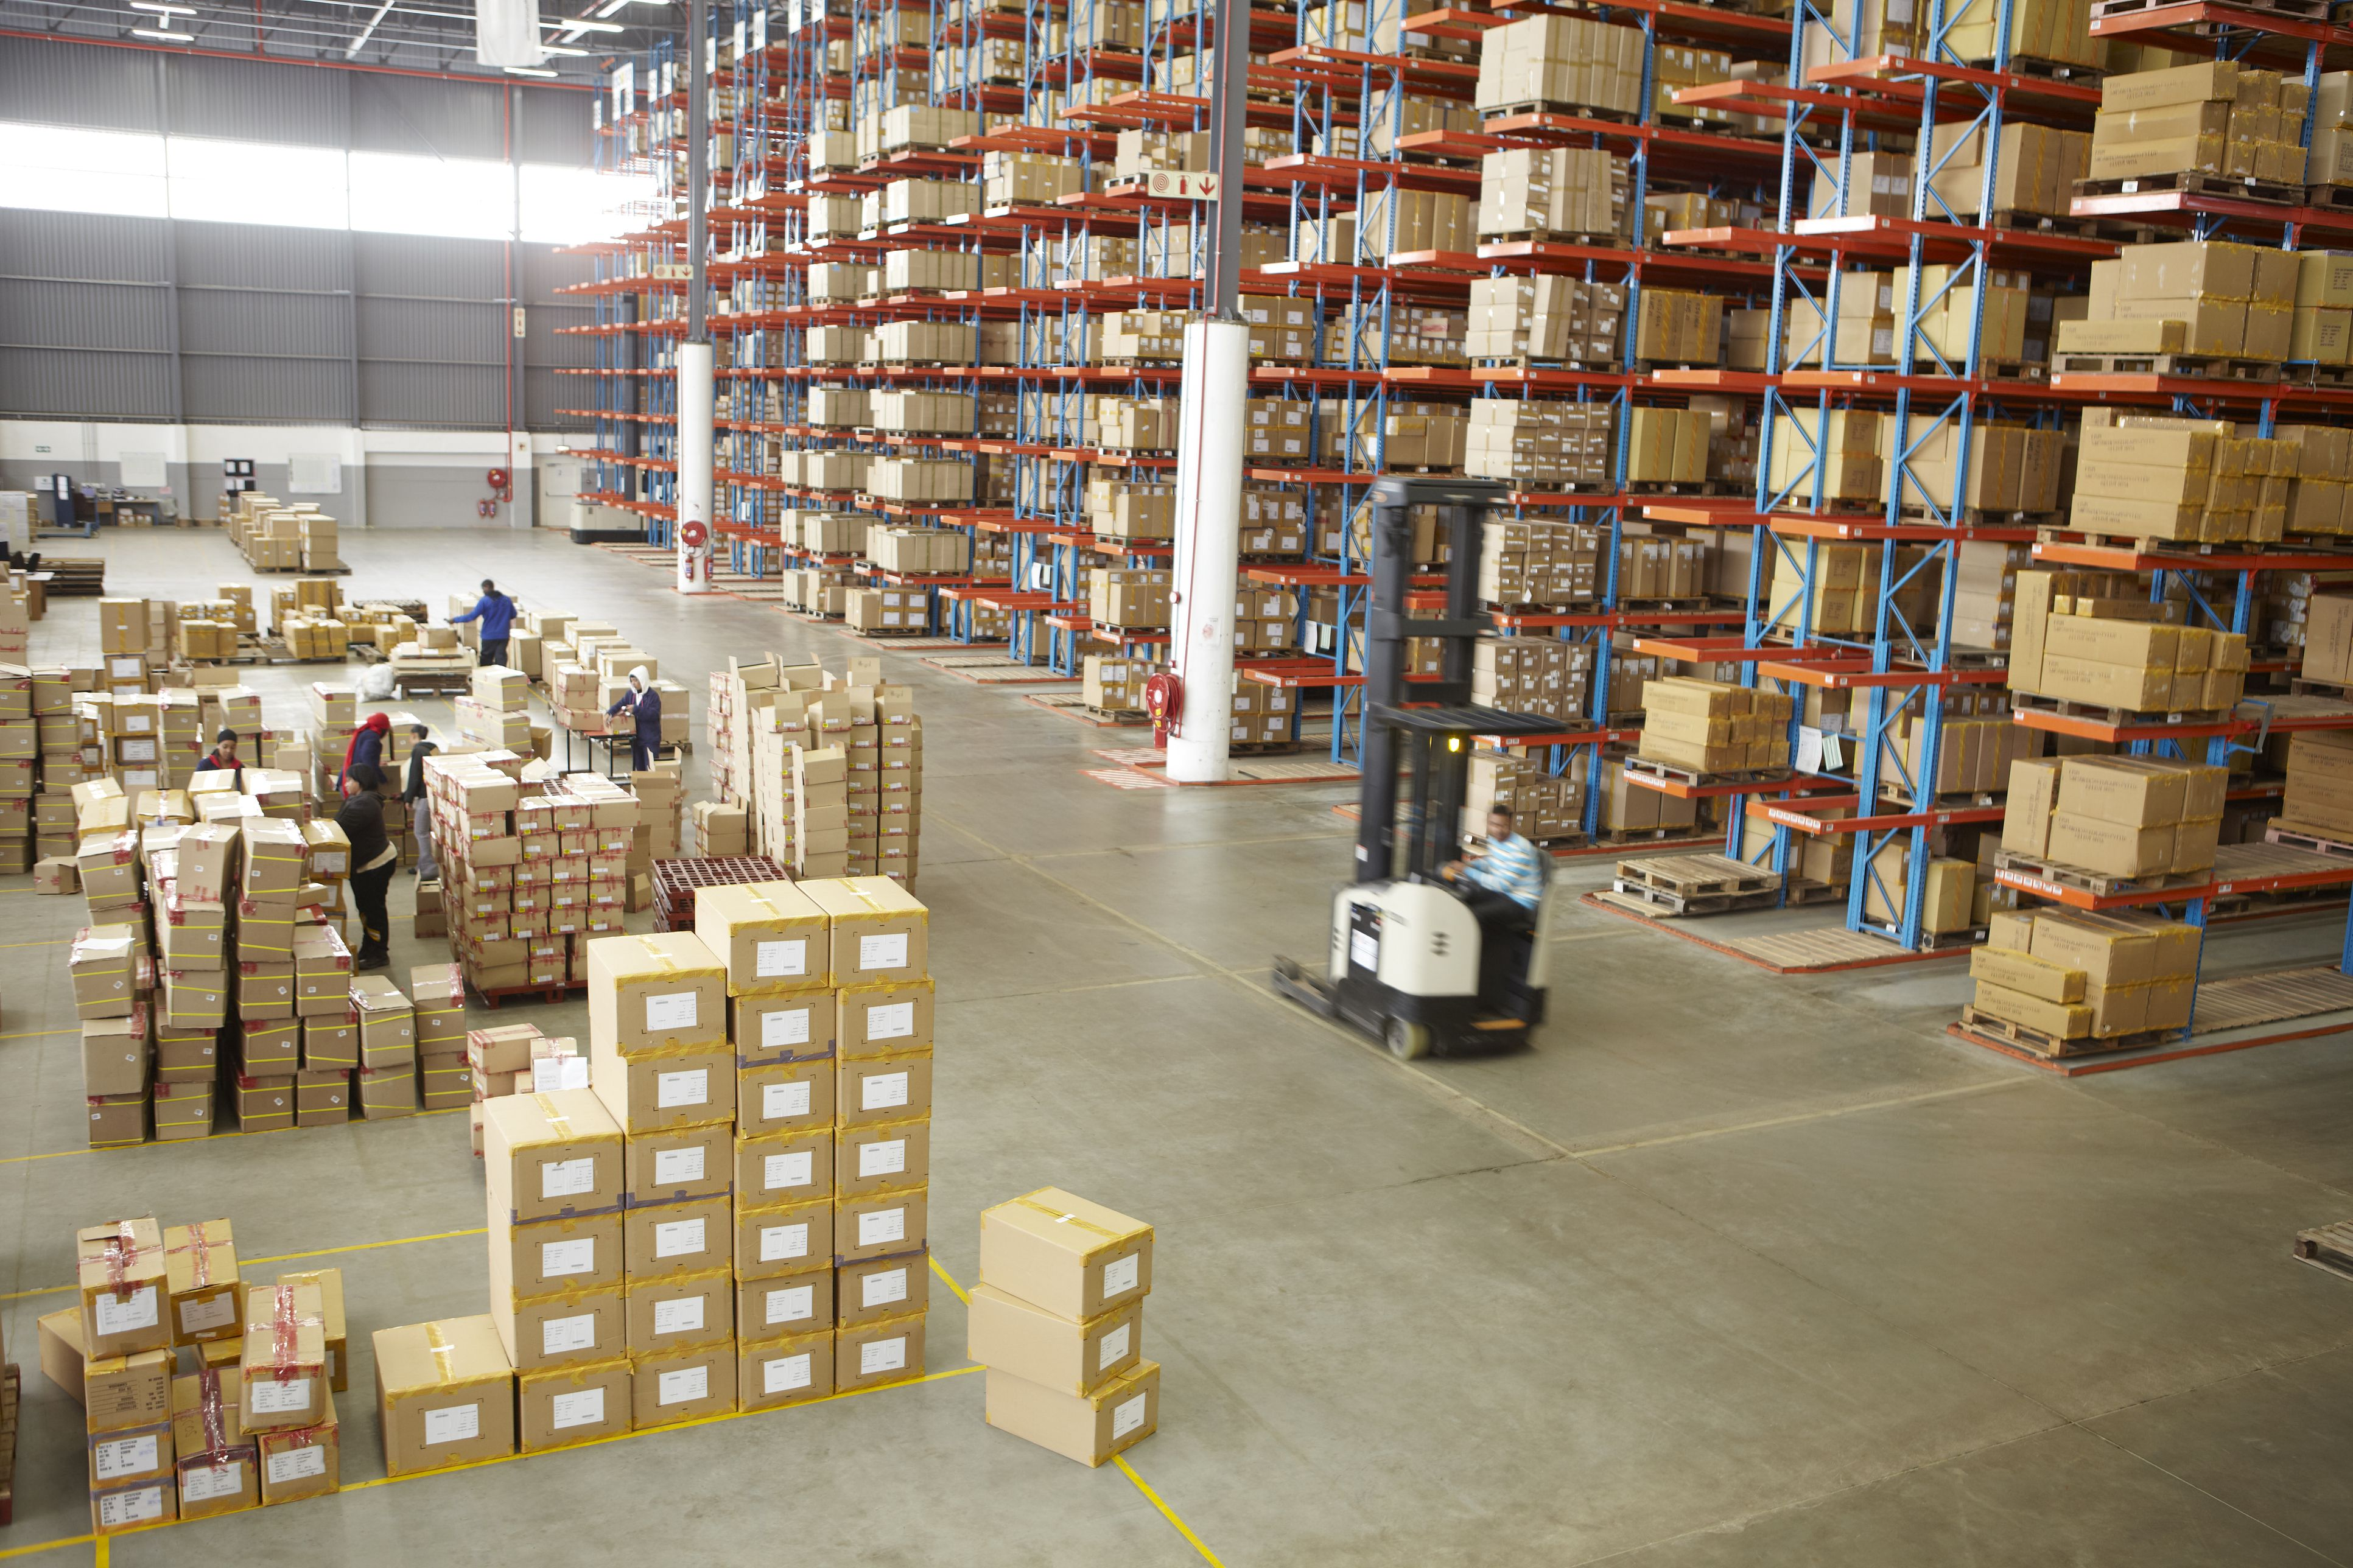 Distribution warehouse for online shopping company